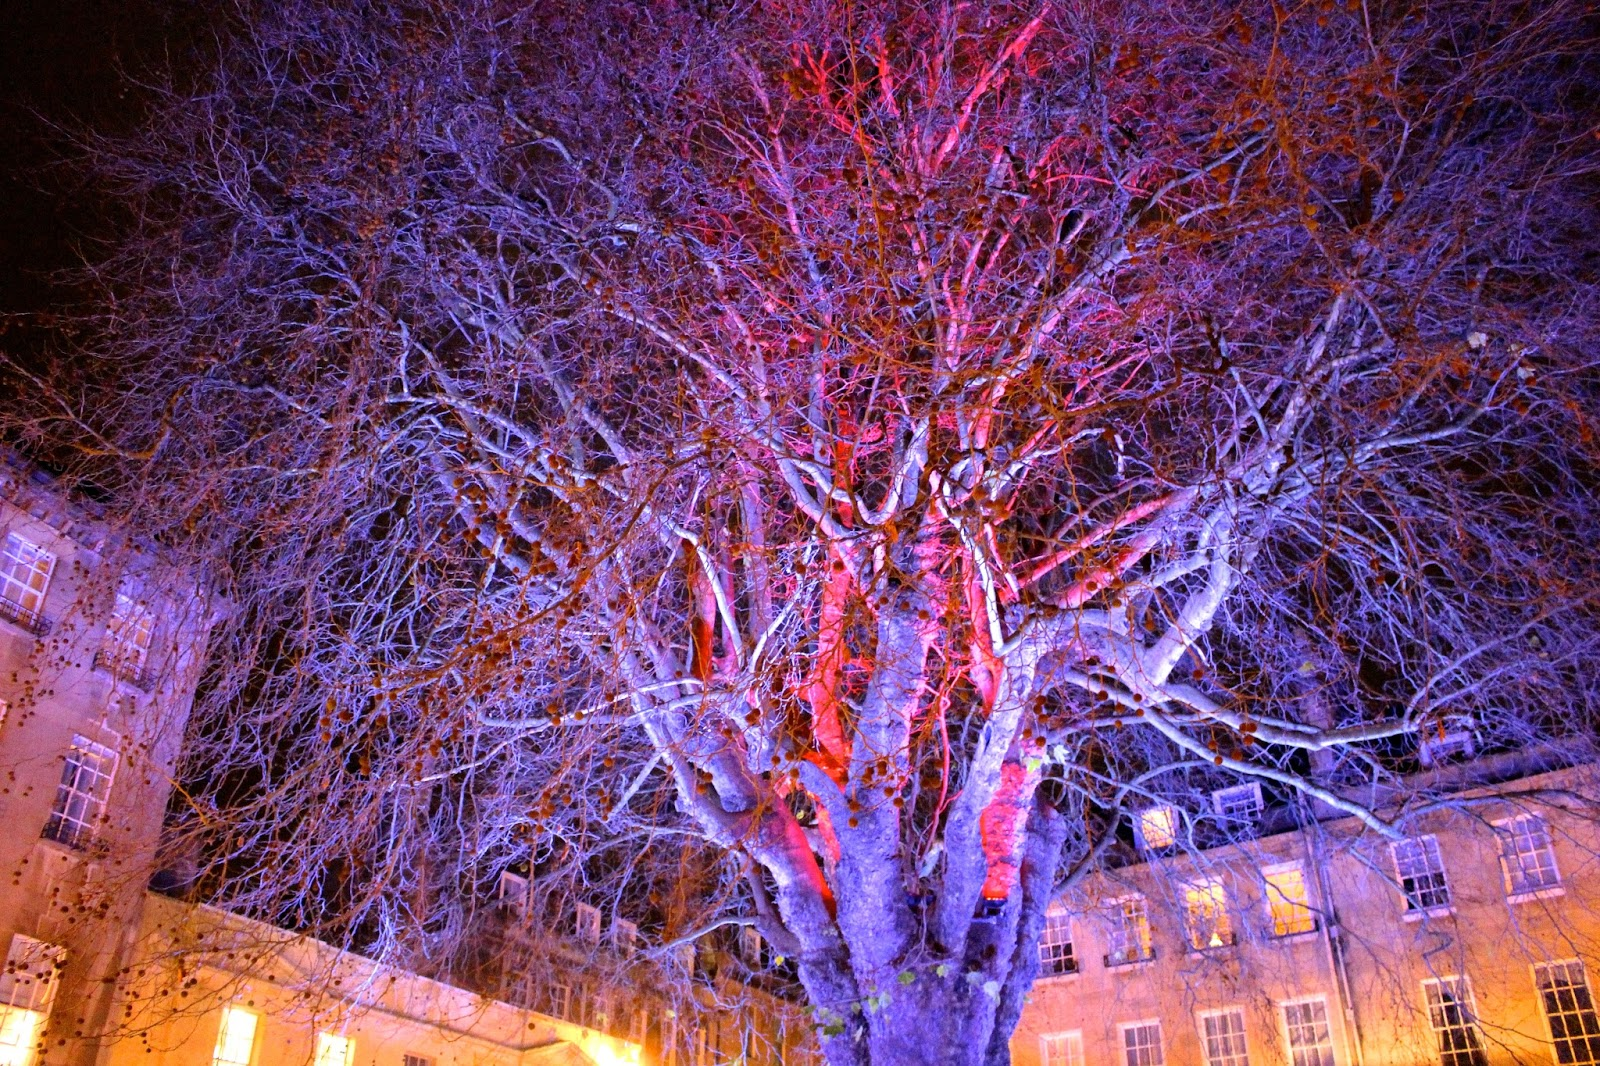 Bath Christmas Markets Illuminated